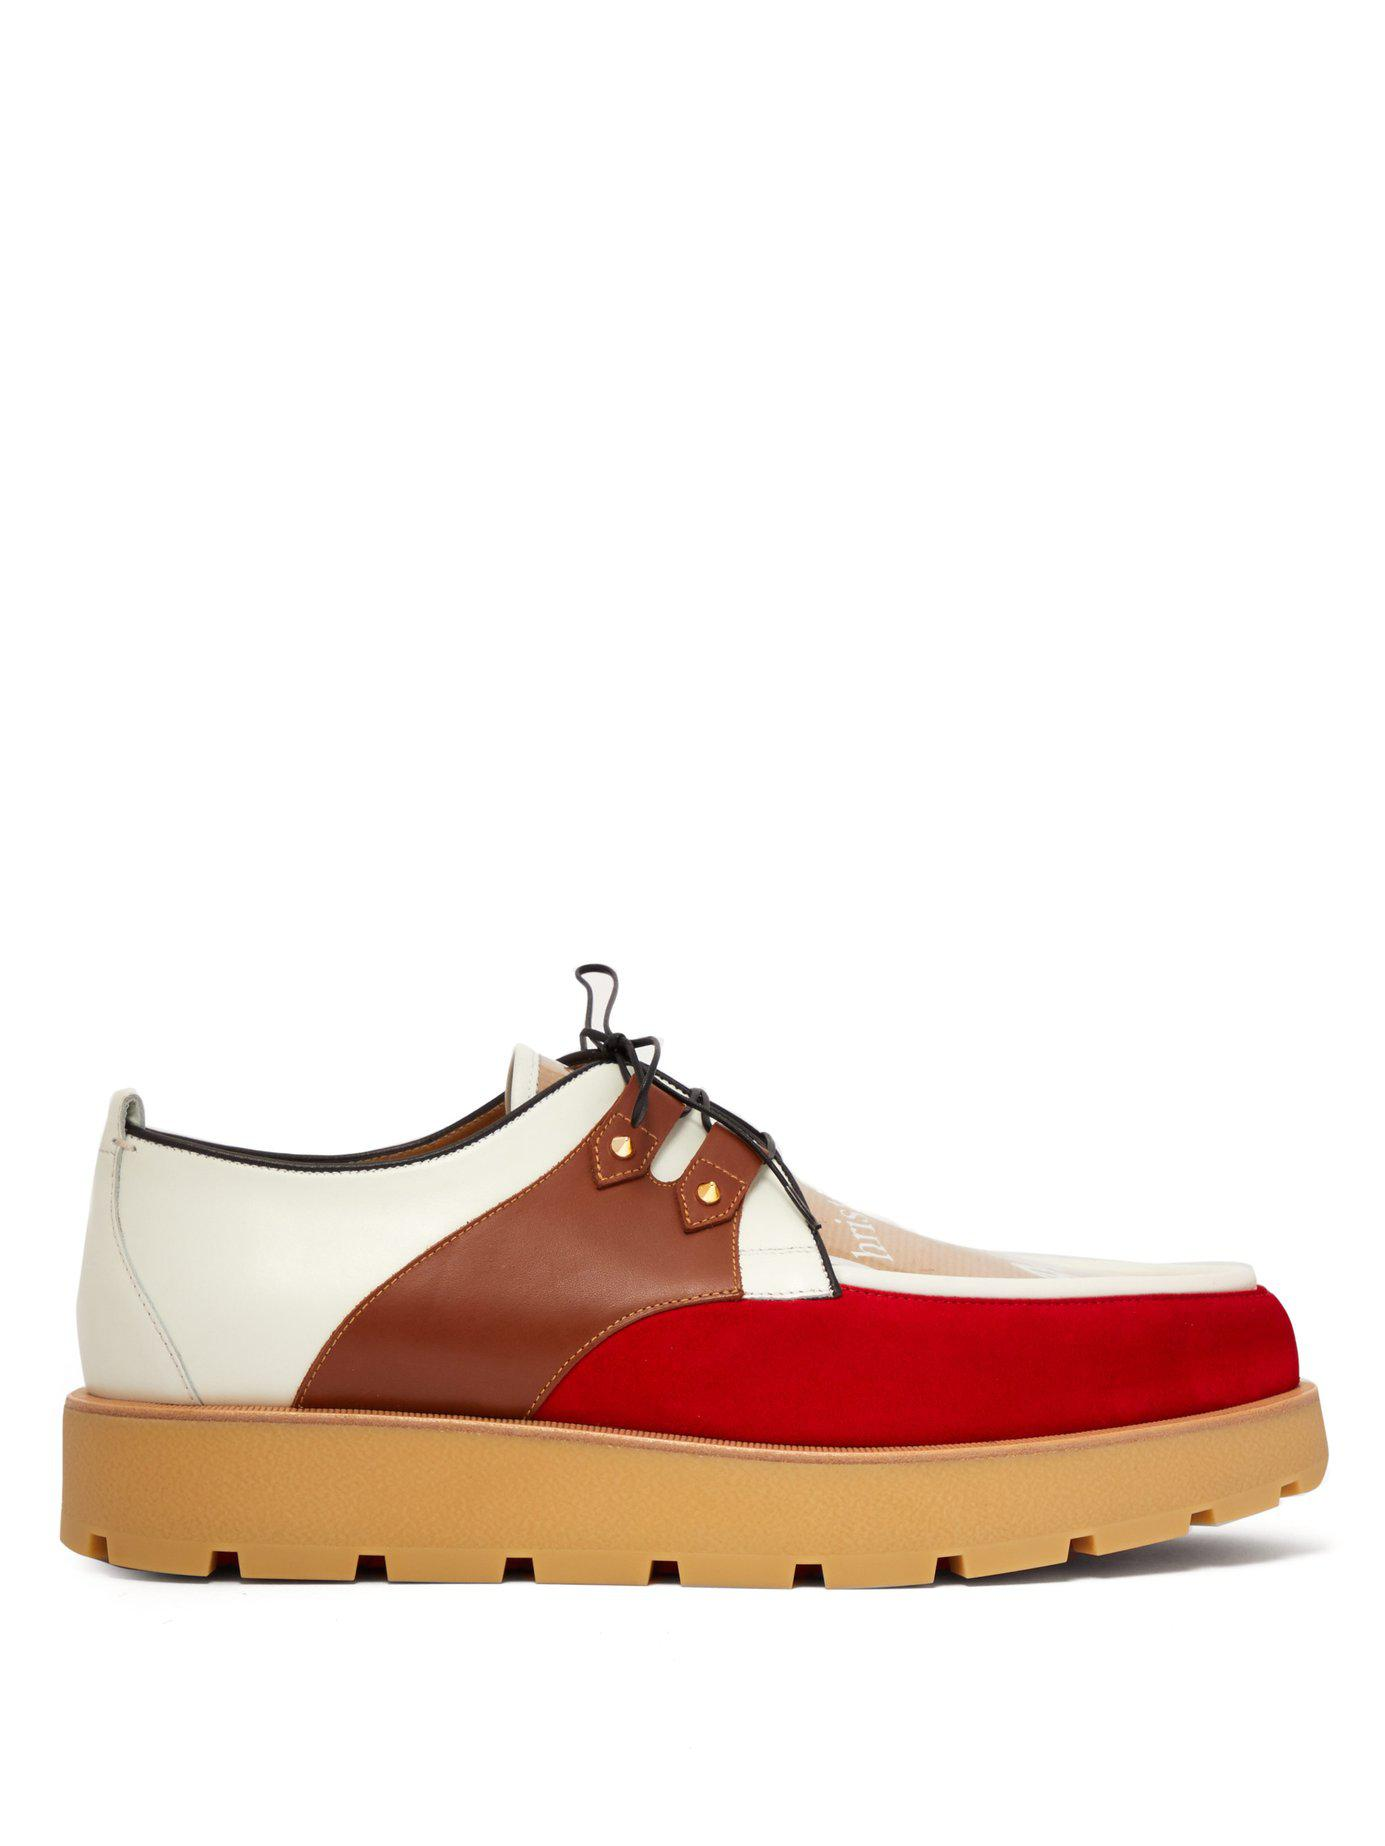 5f5d6184b01 Lyst - Christian Louboutin Marcello Crepe Leather Creepers in Red ...